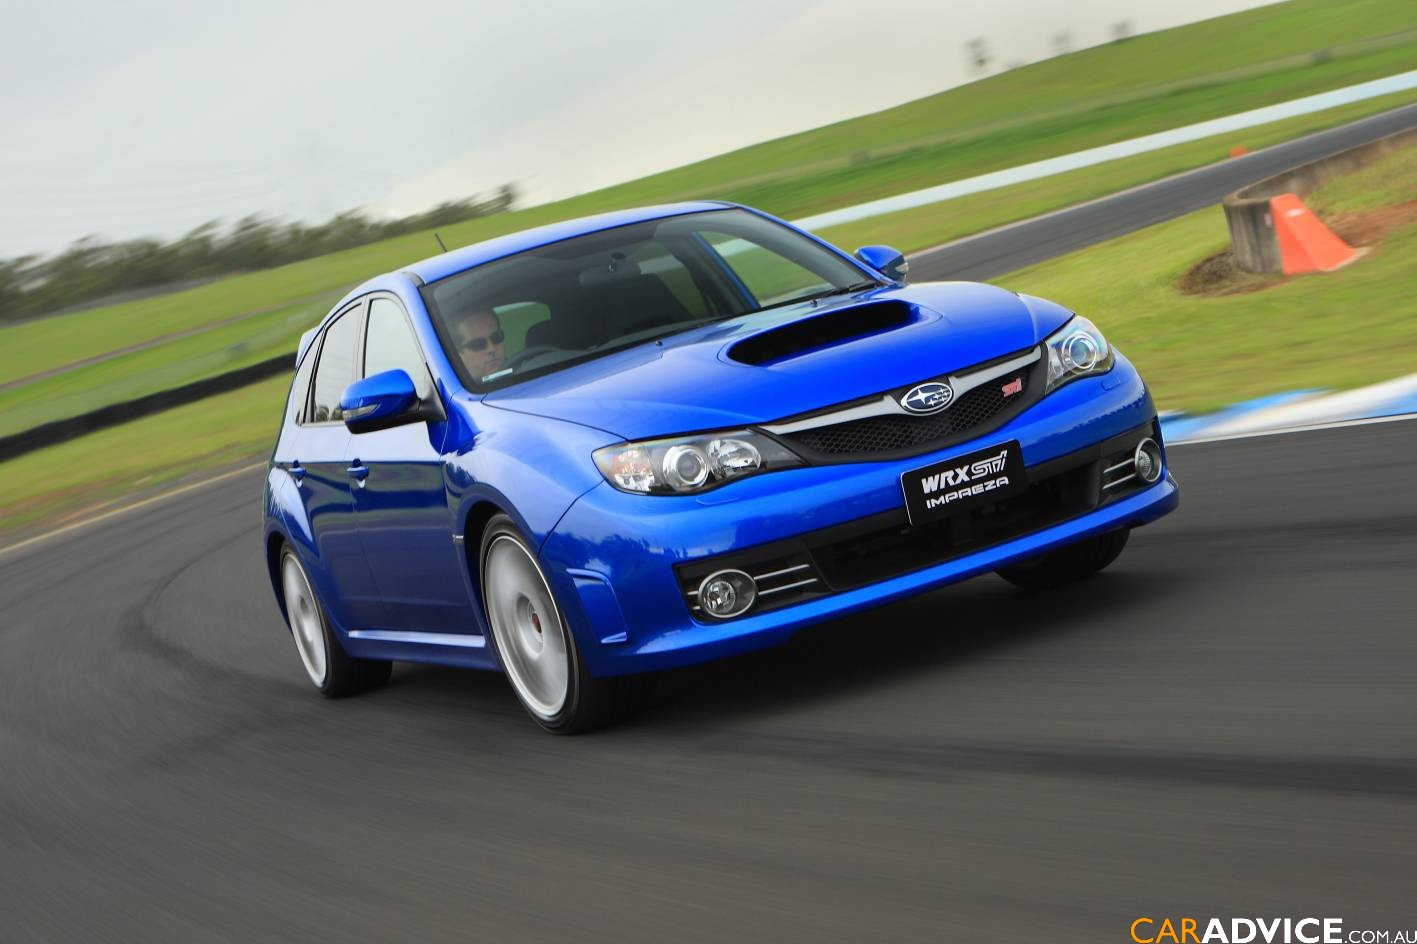 2008 subaru impreza wrx sti photos caradvice. Black Bedroom Furniture Sets. Home Design Ideas